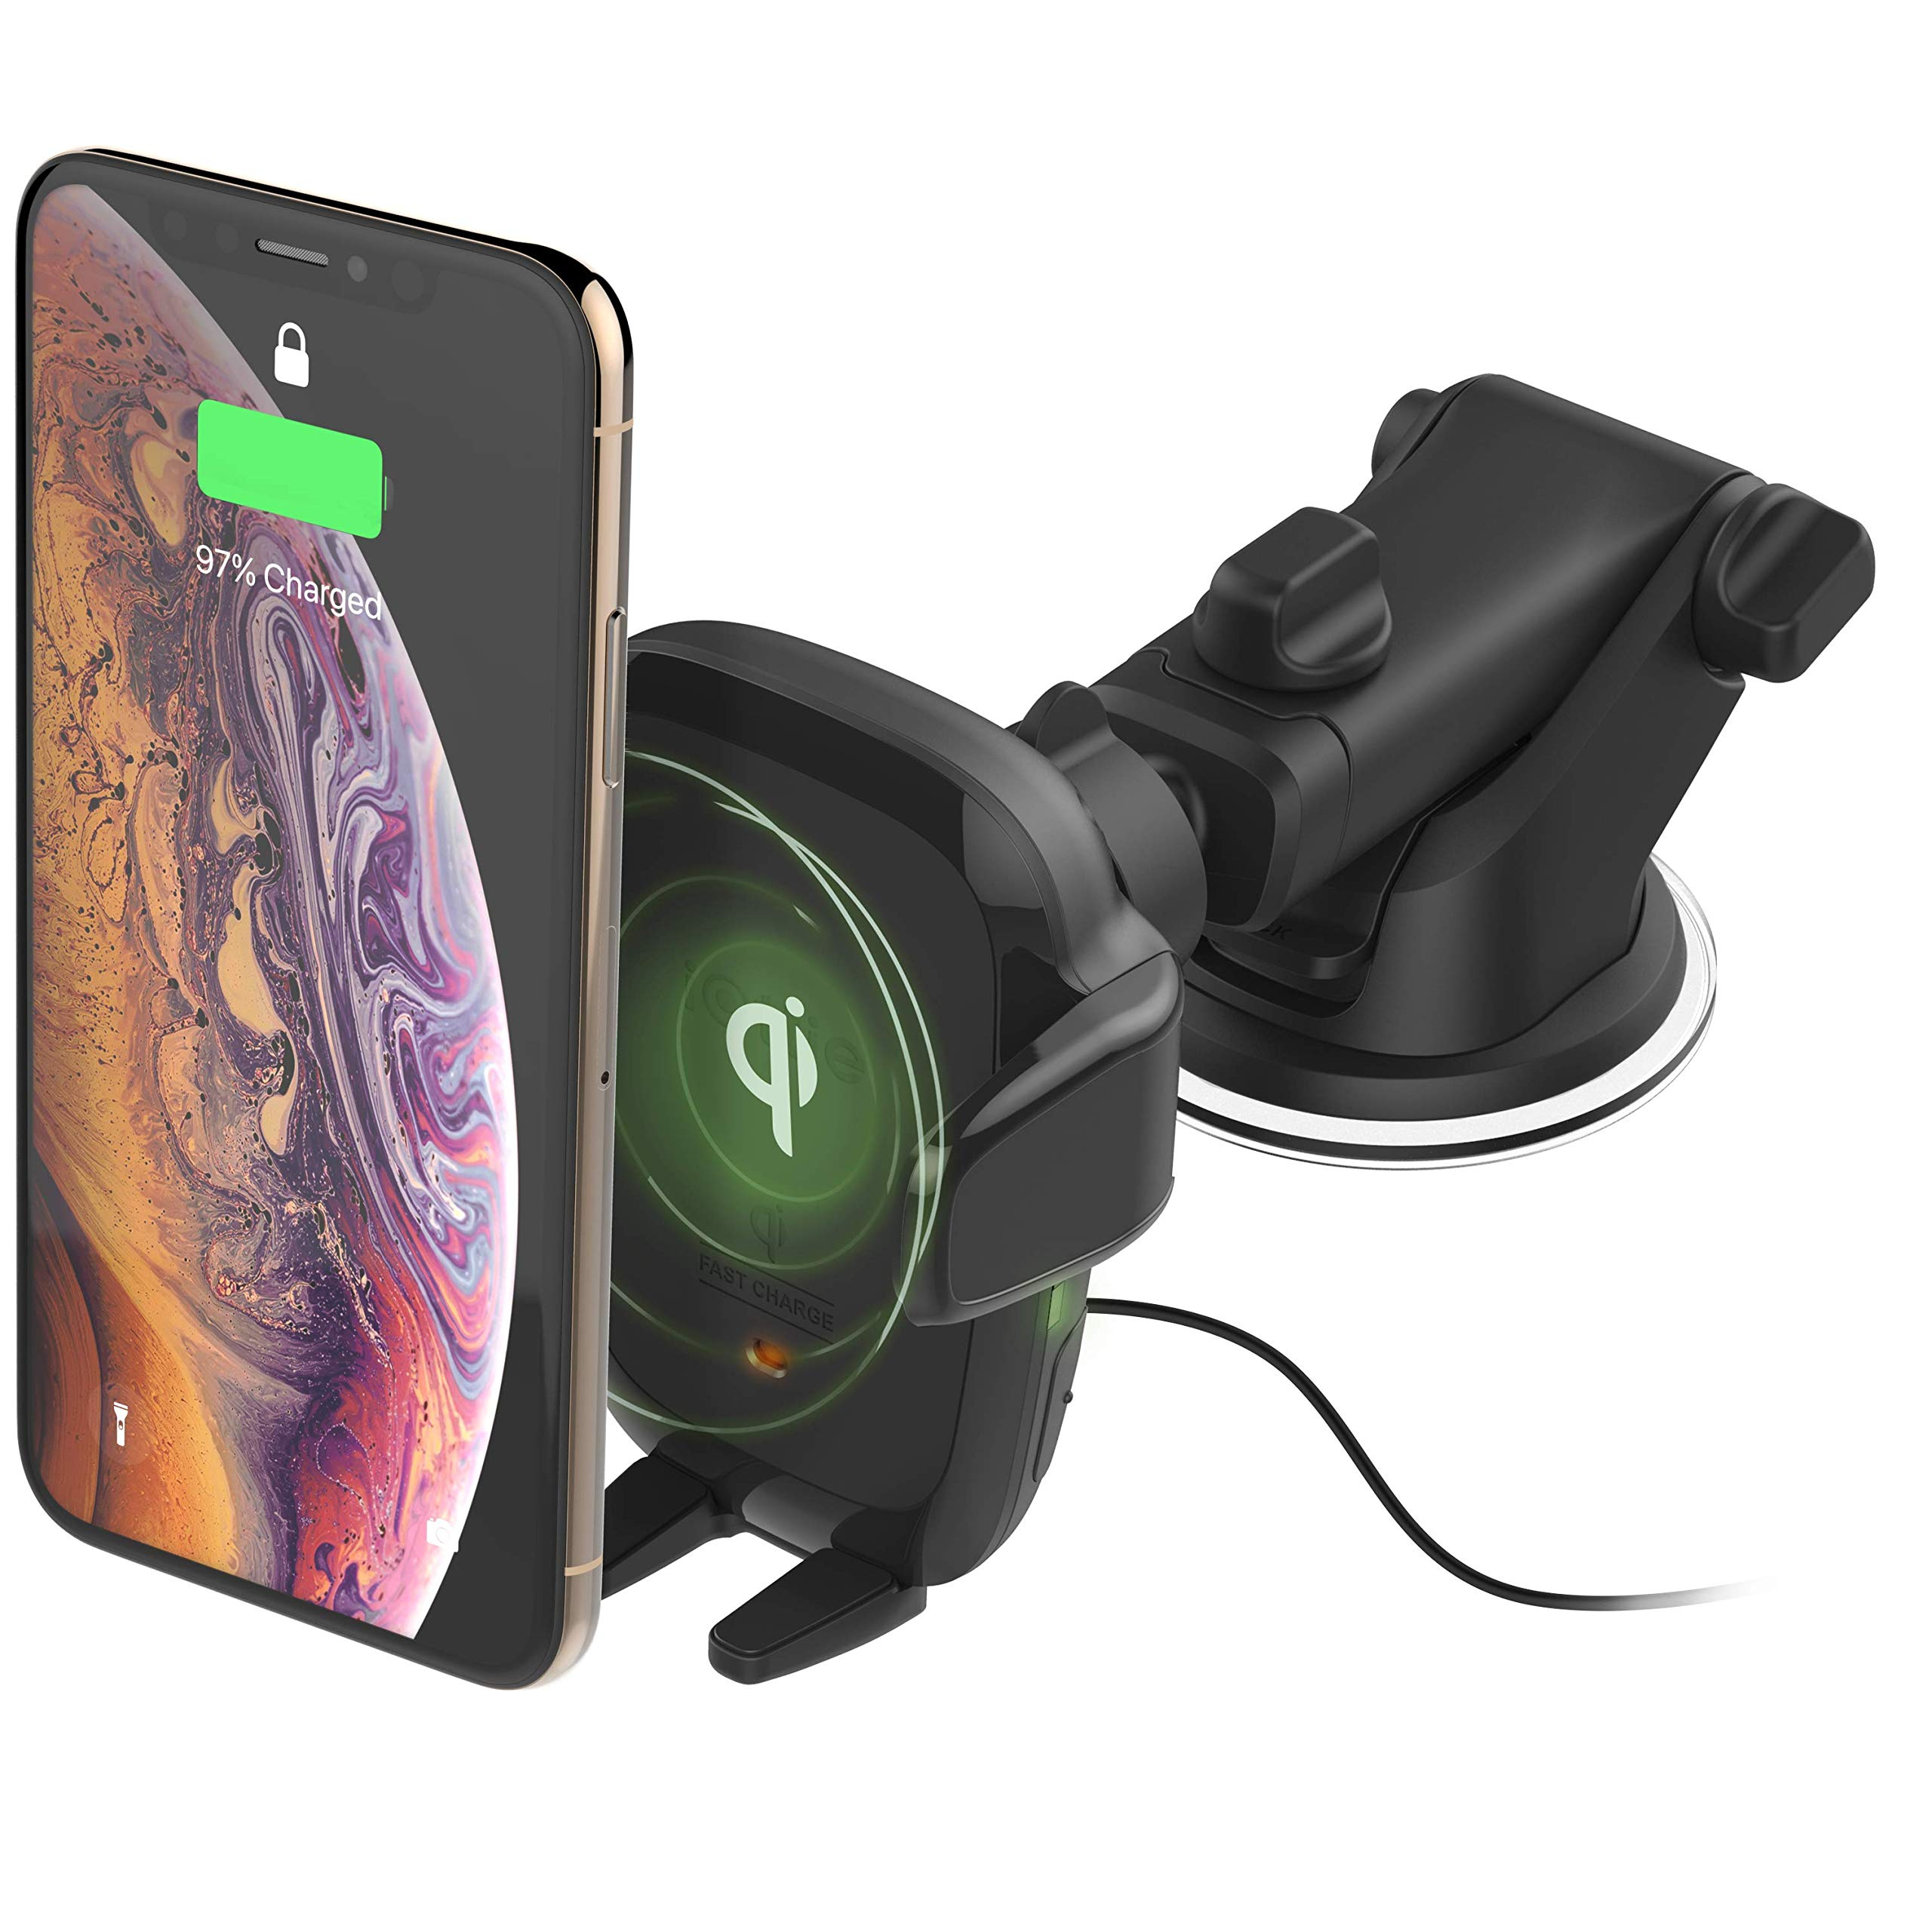 iOttie Auto Sense Automatic Clamping Qi Wireless Charging Dashboard Car Phone Mount, Car Charger || for iPhone, Samsung Galaxy, Huawei, LG, Smartphones by iOttie